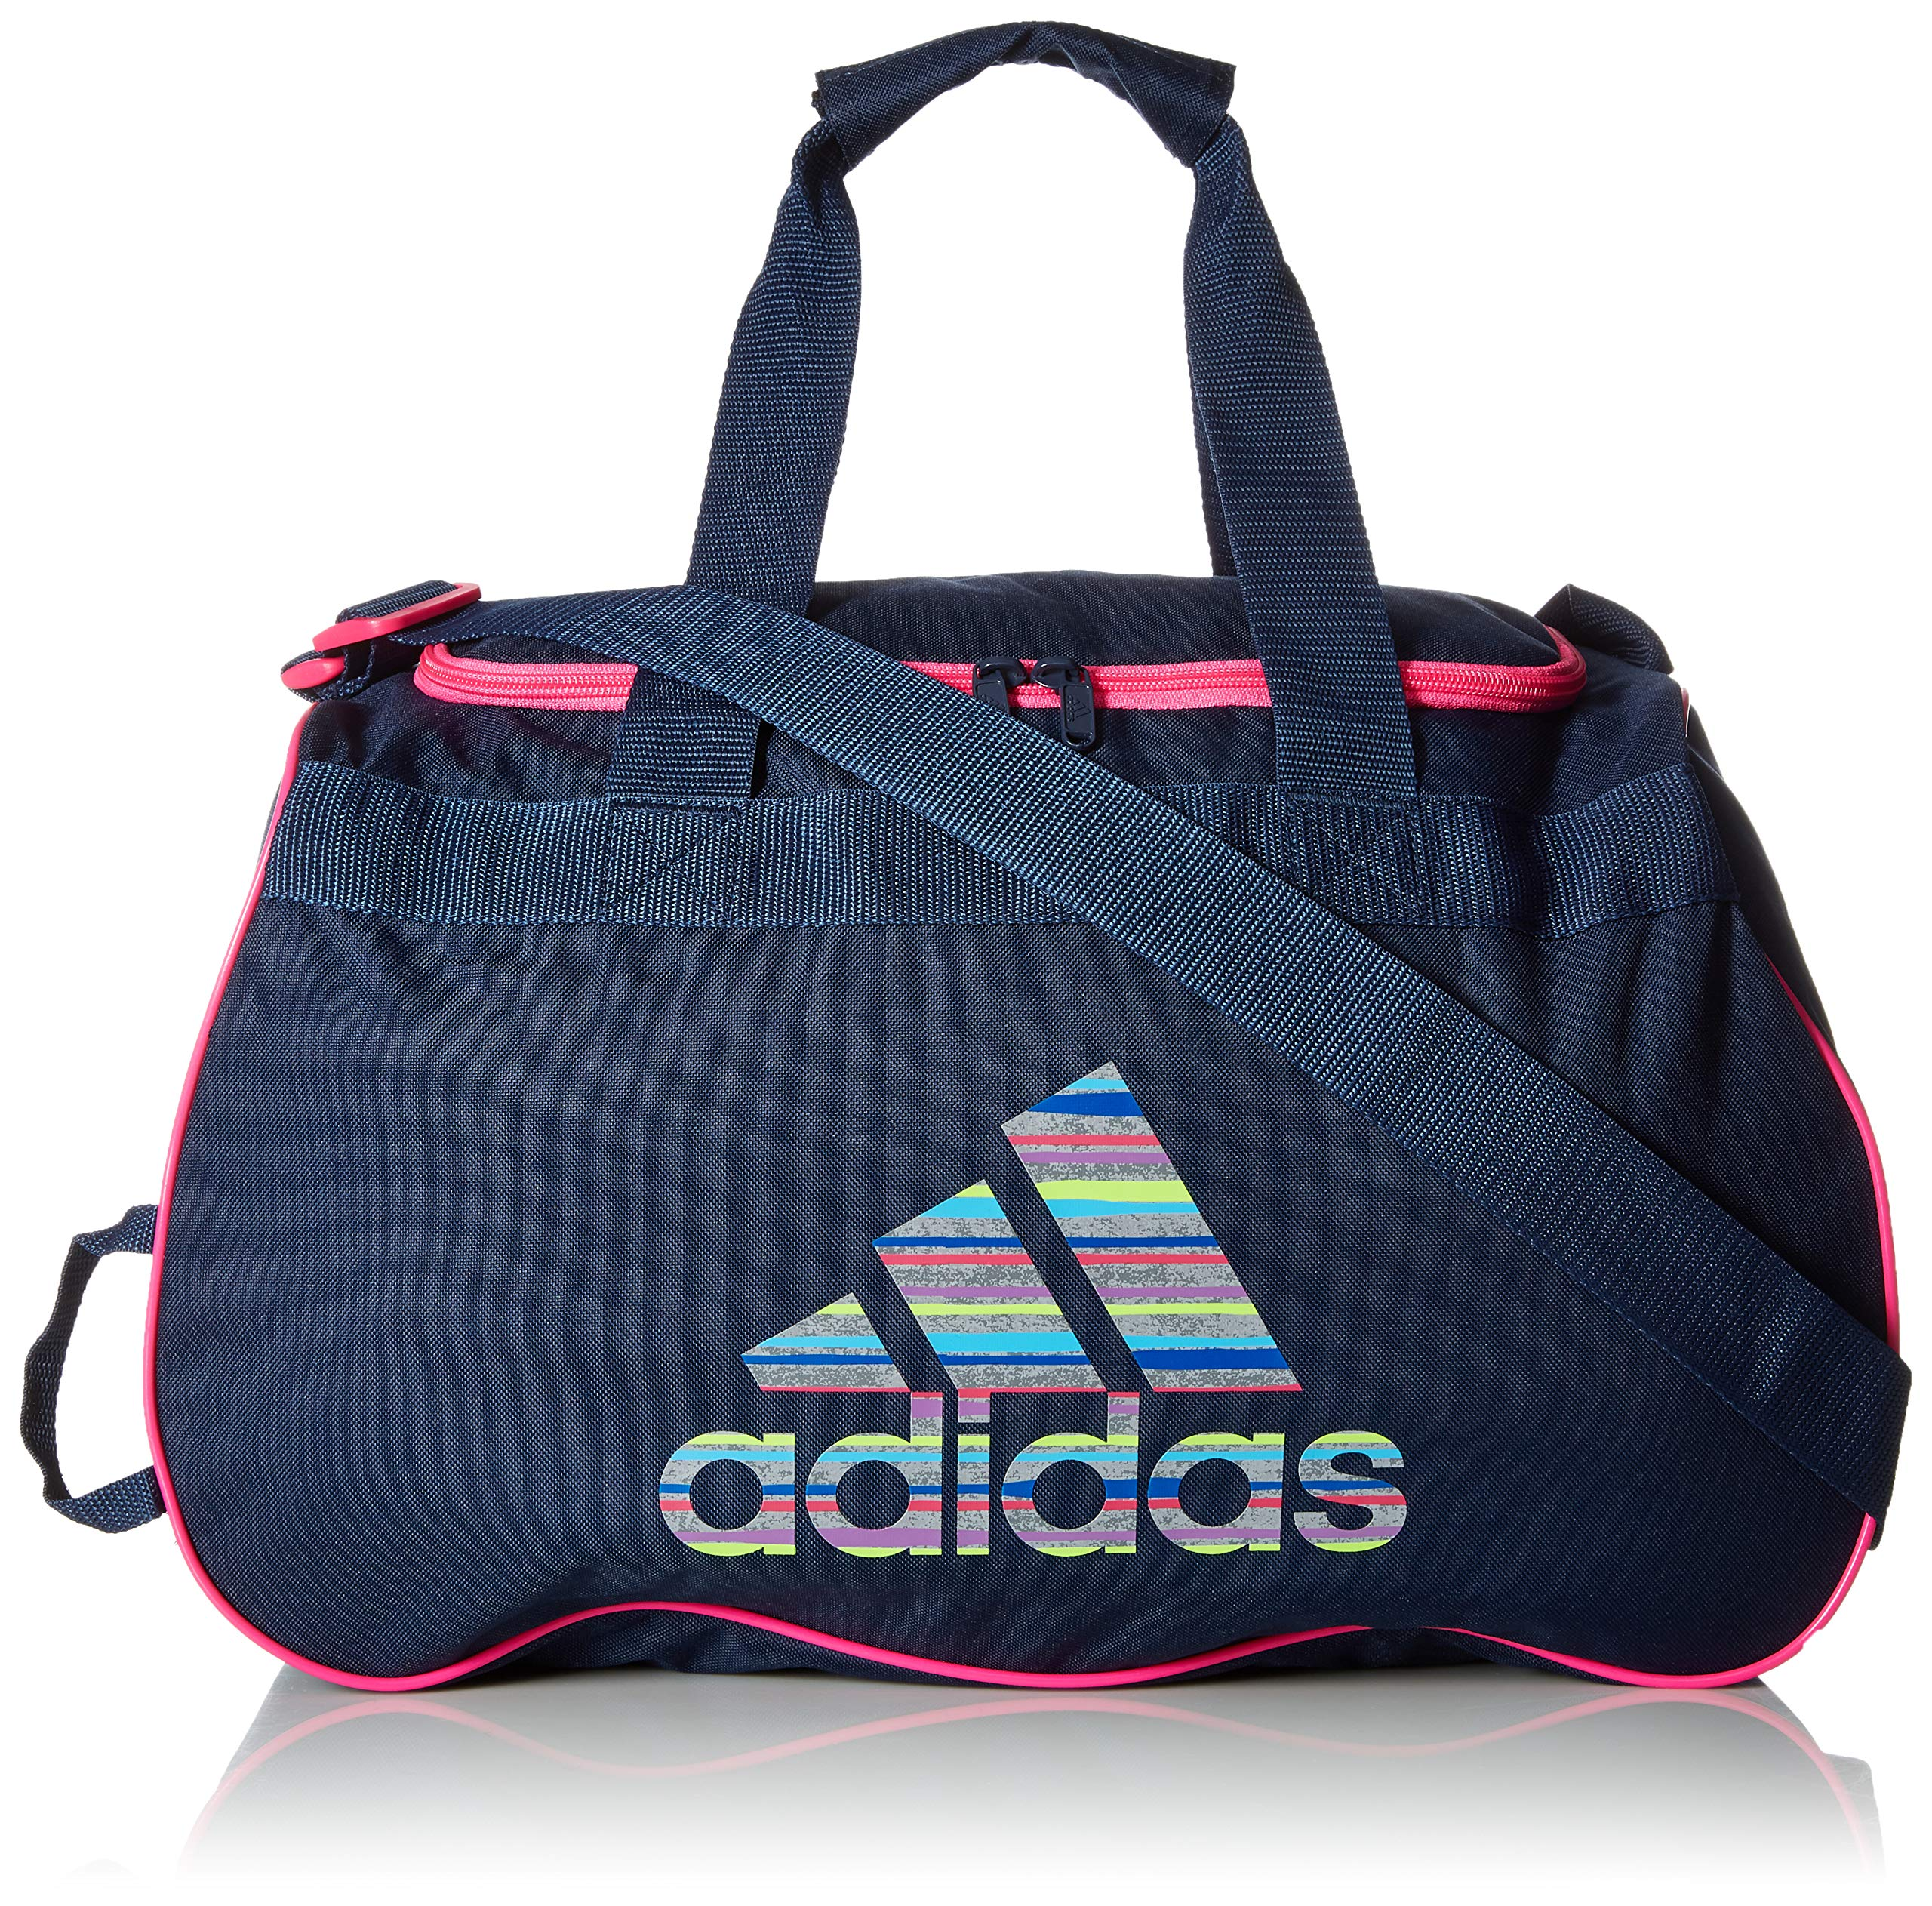 adidas Unisex Diablo Small Duffel Bag, Collegiate Navy/Shock Pink Andreas/Shock Pink, ONE SIZE by adidas